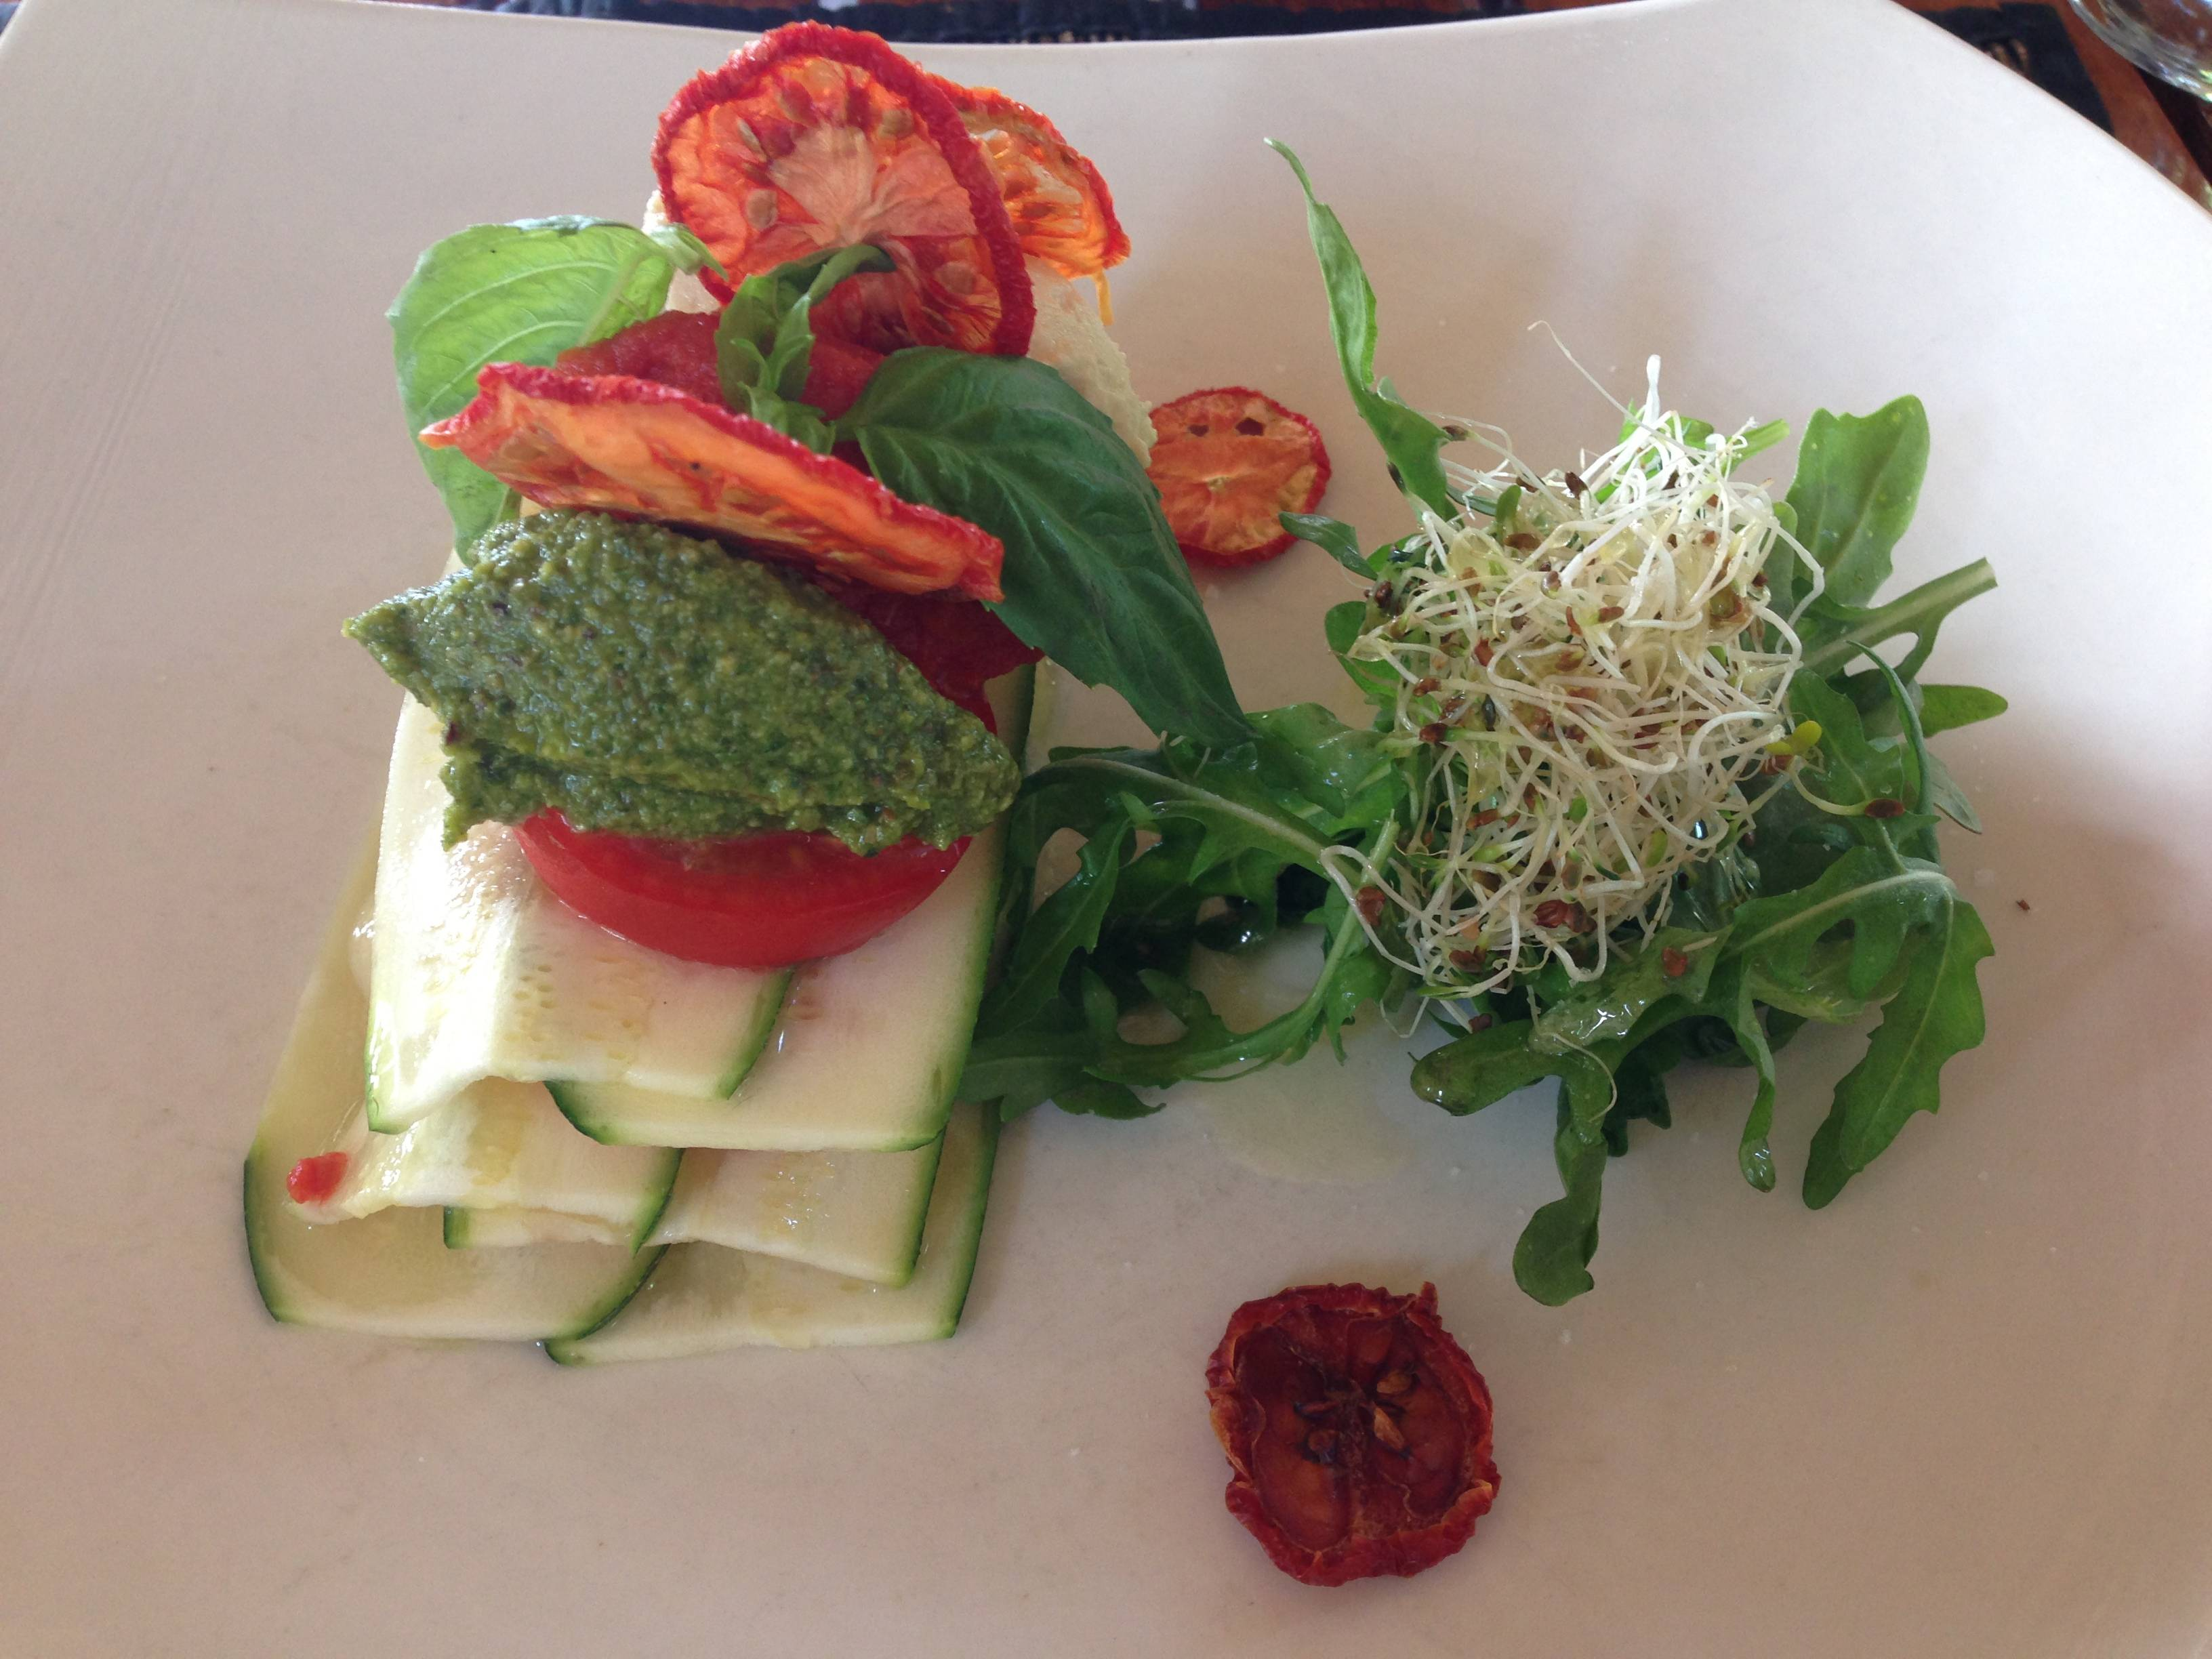 Raw Lasagne from the COMO Shambala Menu